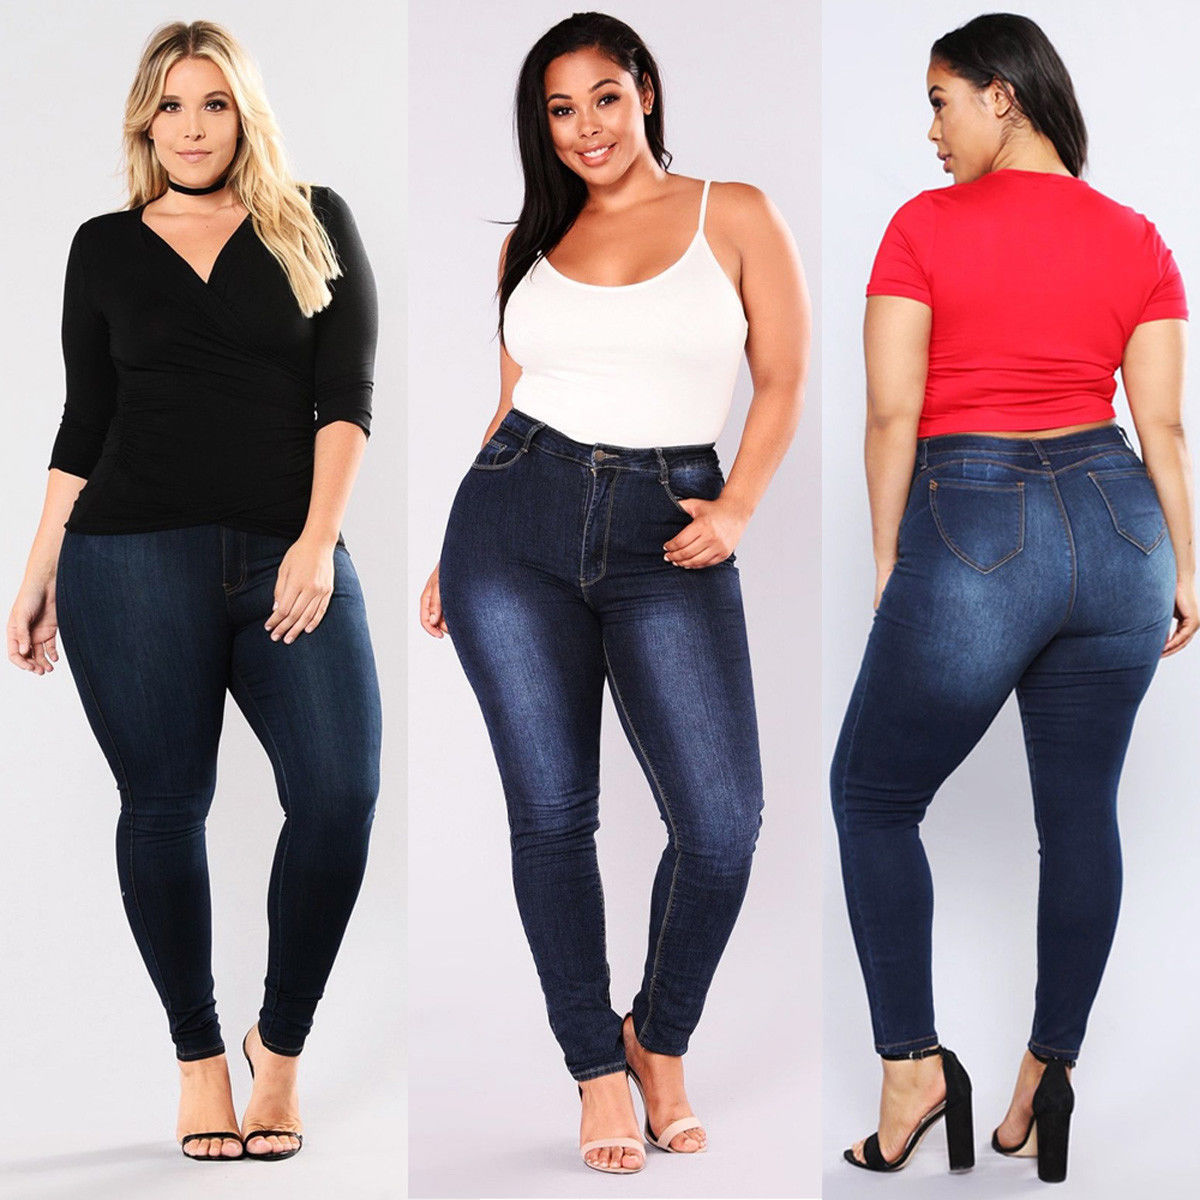 2018 Hot Jeans Woman Plus Size 5XL High Waist Jeans Gradient Denim Ladies Jeans Femme Push Up Mom Jeans Flower Pants Elastic